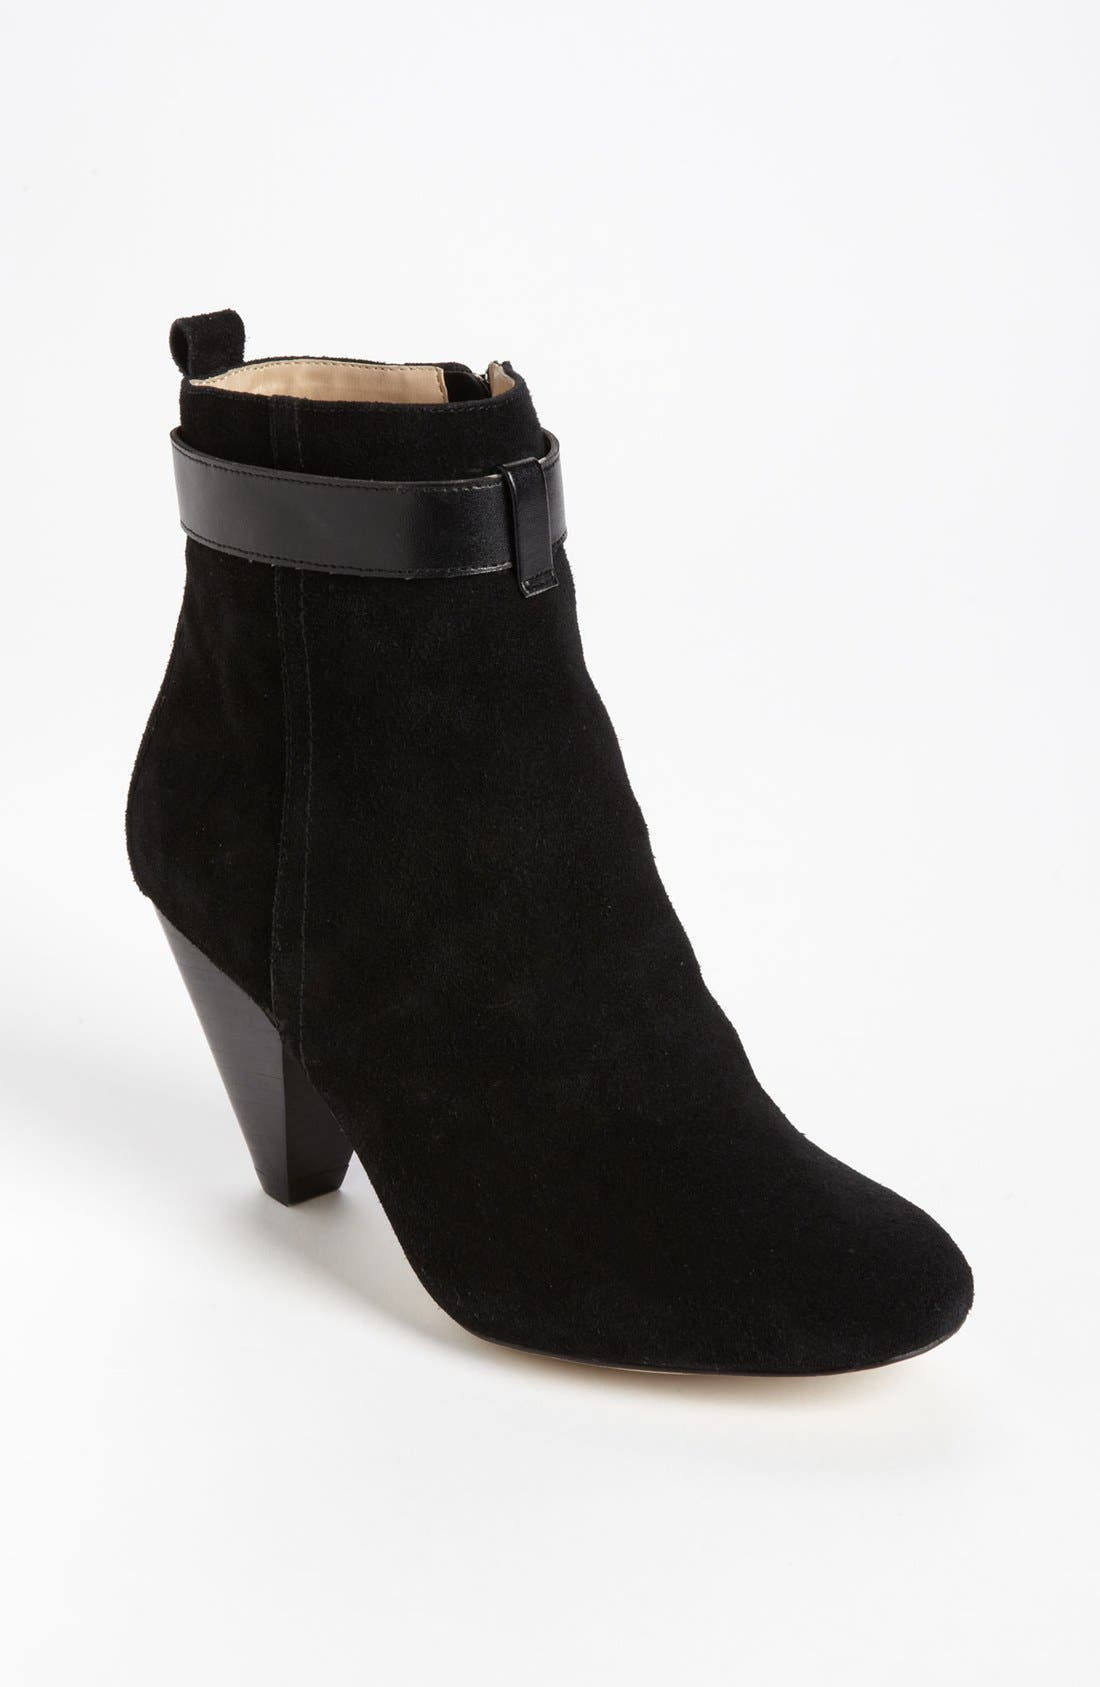 Alternate Image 1 Selected - Julianne Hough for Sole Society 'Vivienne' Boot